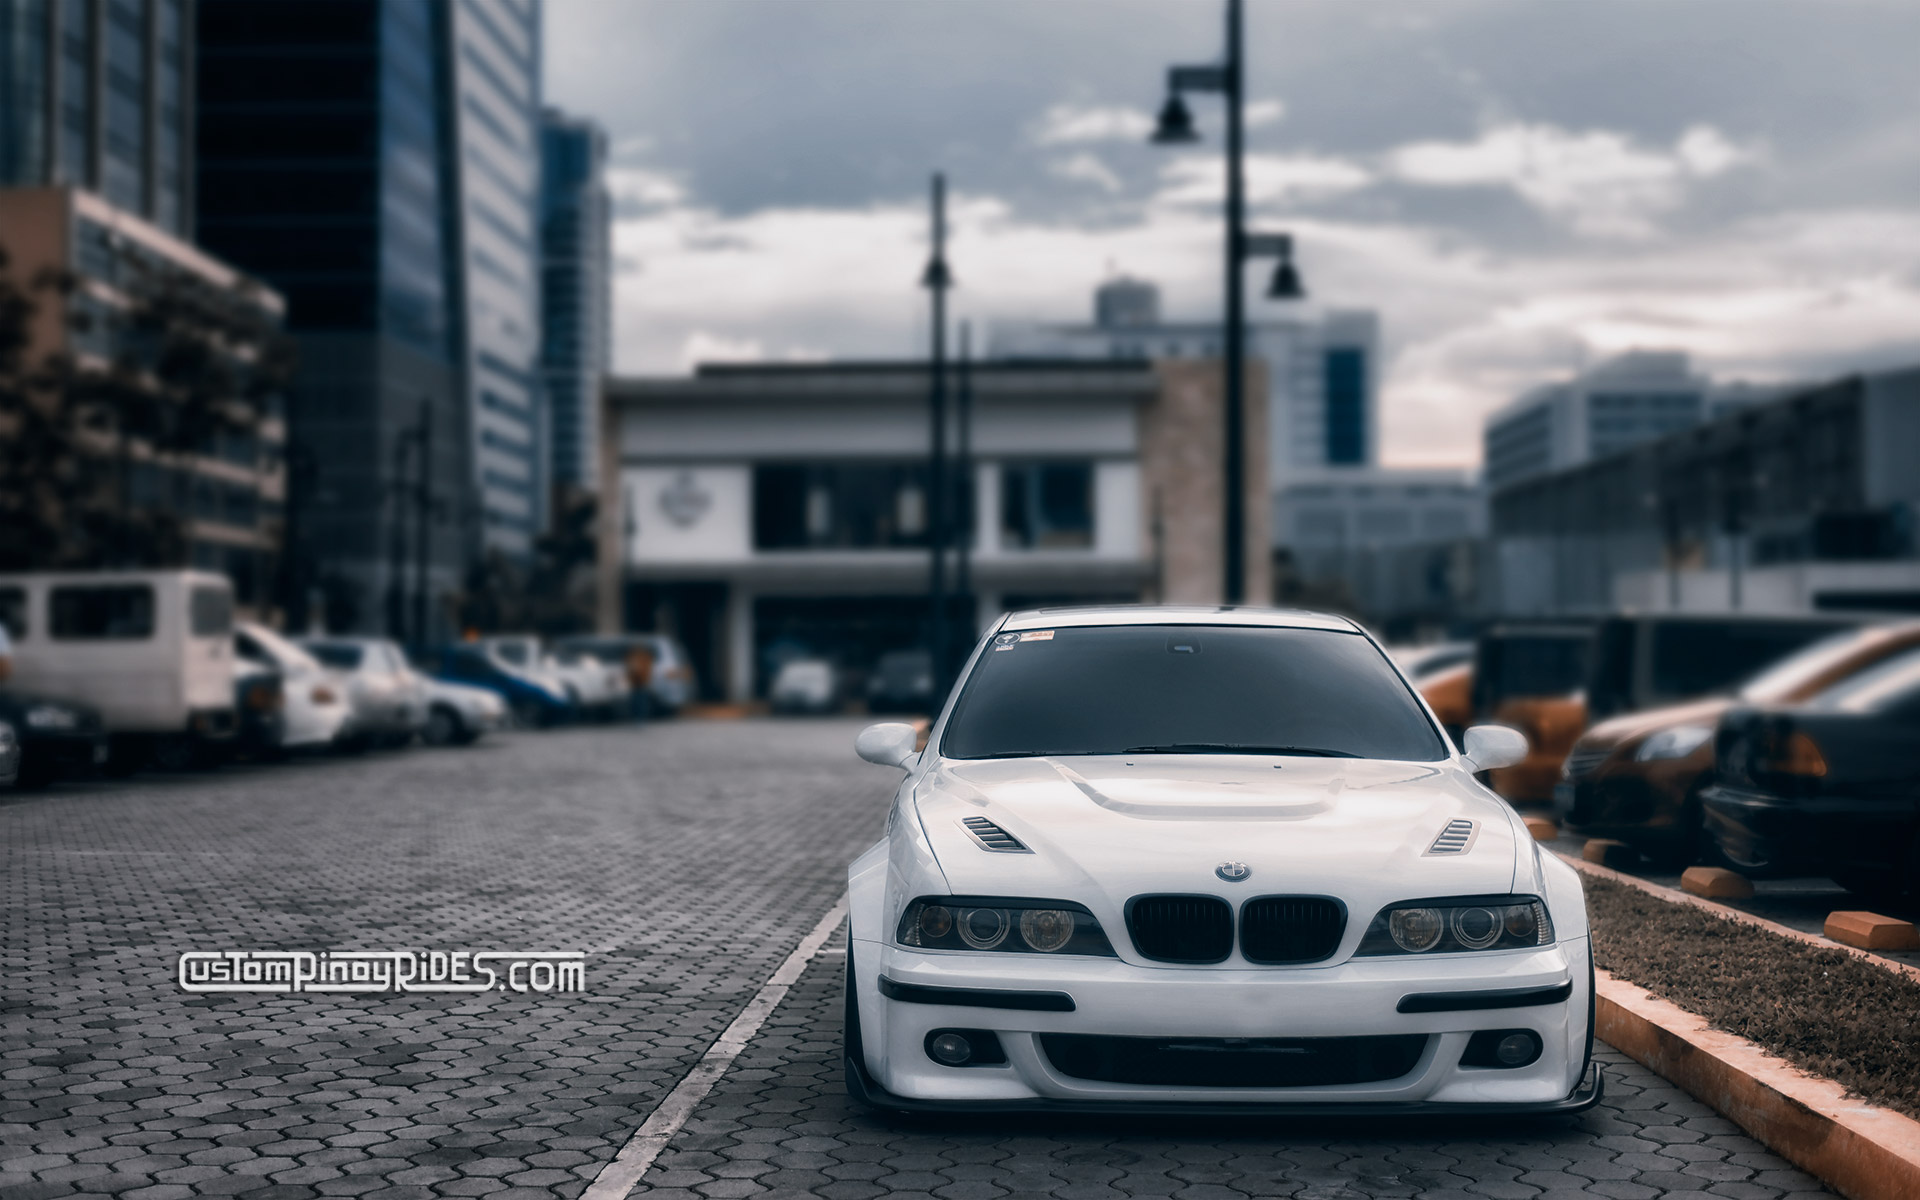 Wallpaper Wednesdays: Airbagged Stormtrooper BMW M5 Custom Pinoy Rides Car Photography Philip Aragones